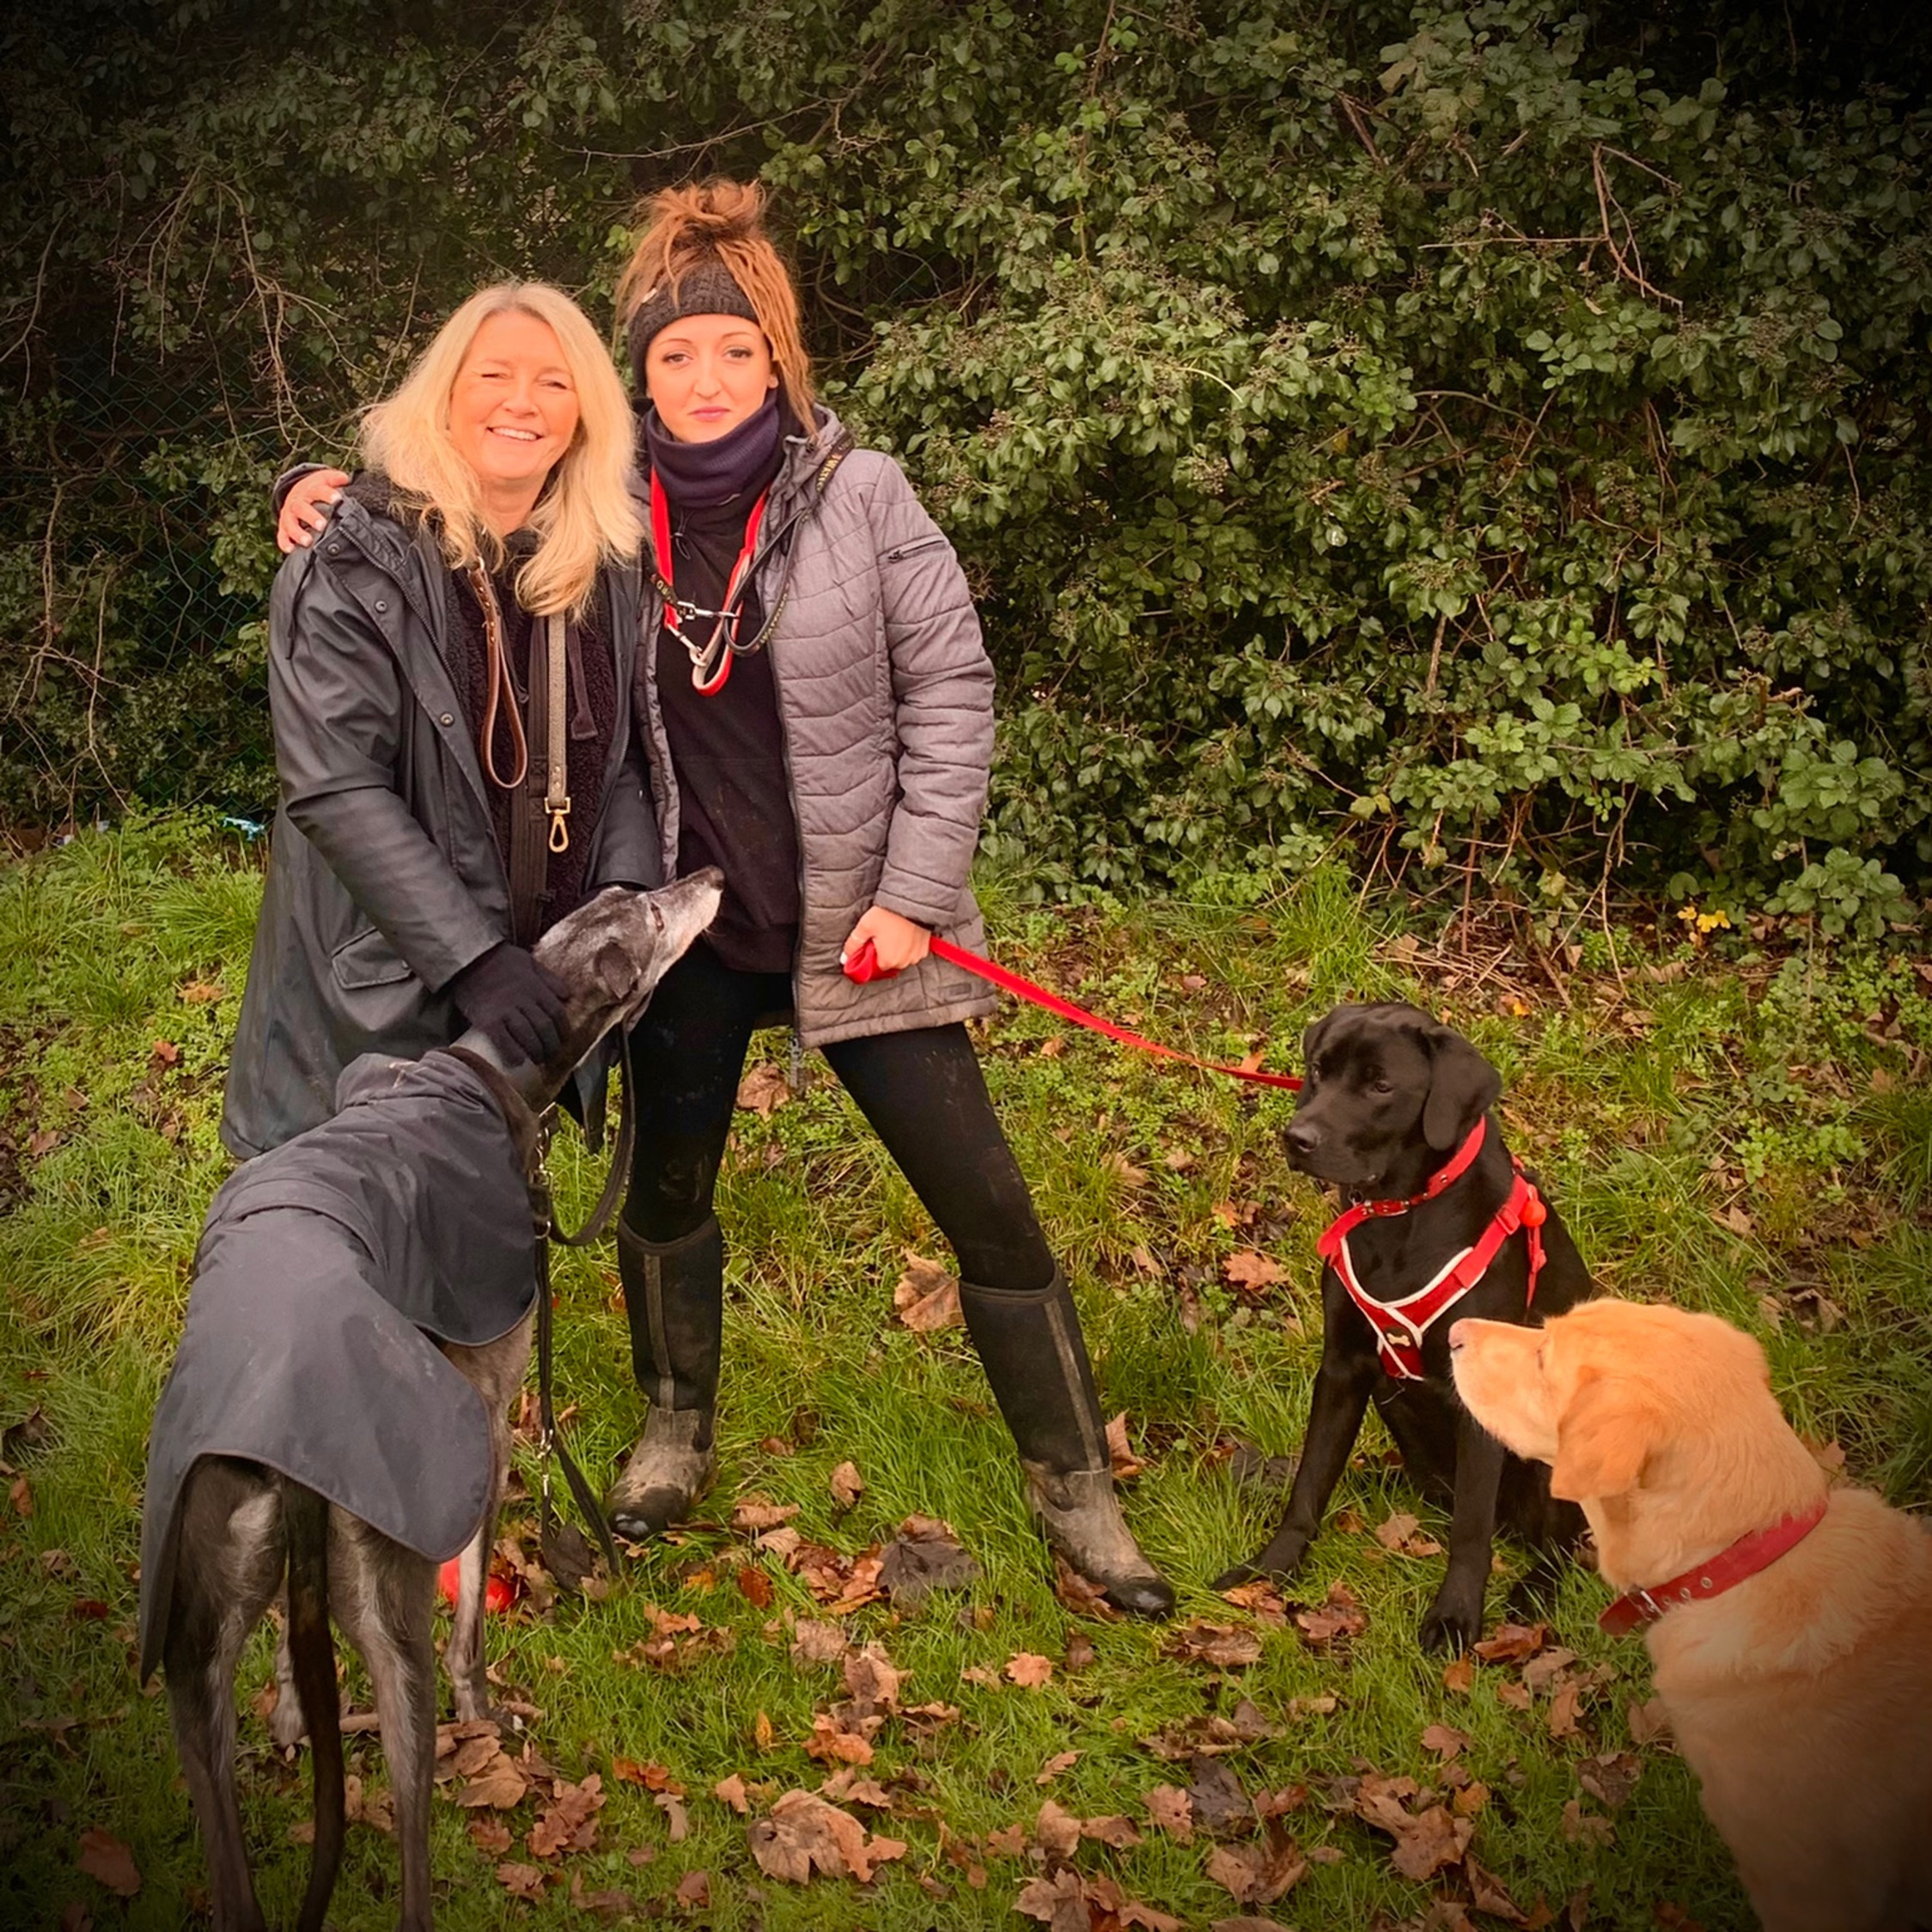 herts hiking hounds dog walking walker and training abbots kings langley hertfordshire pet photography10